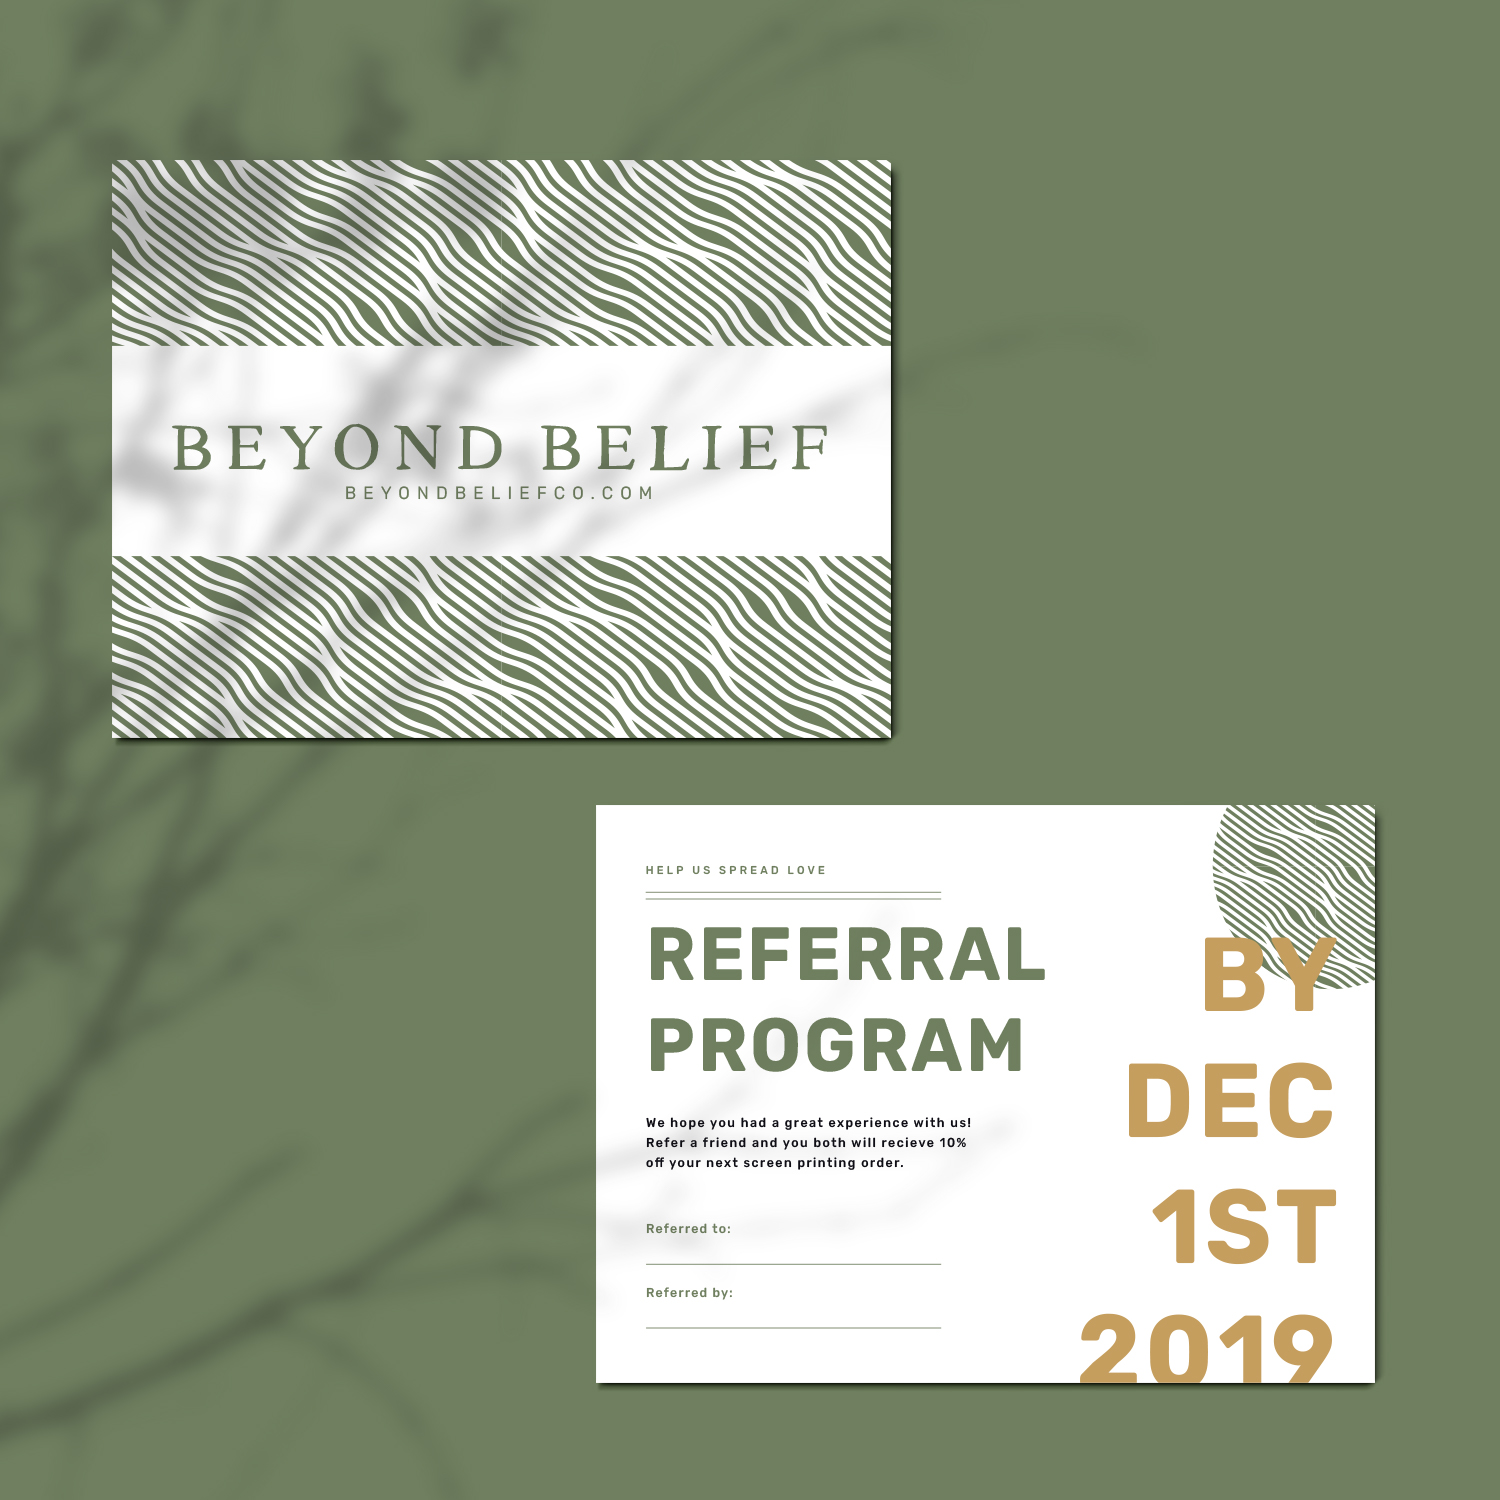 REFERRAL CARD MOCKUP.jpg